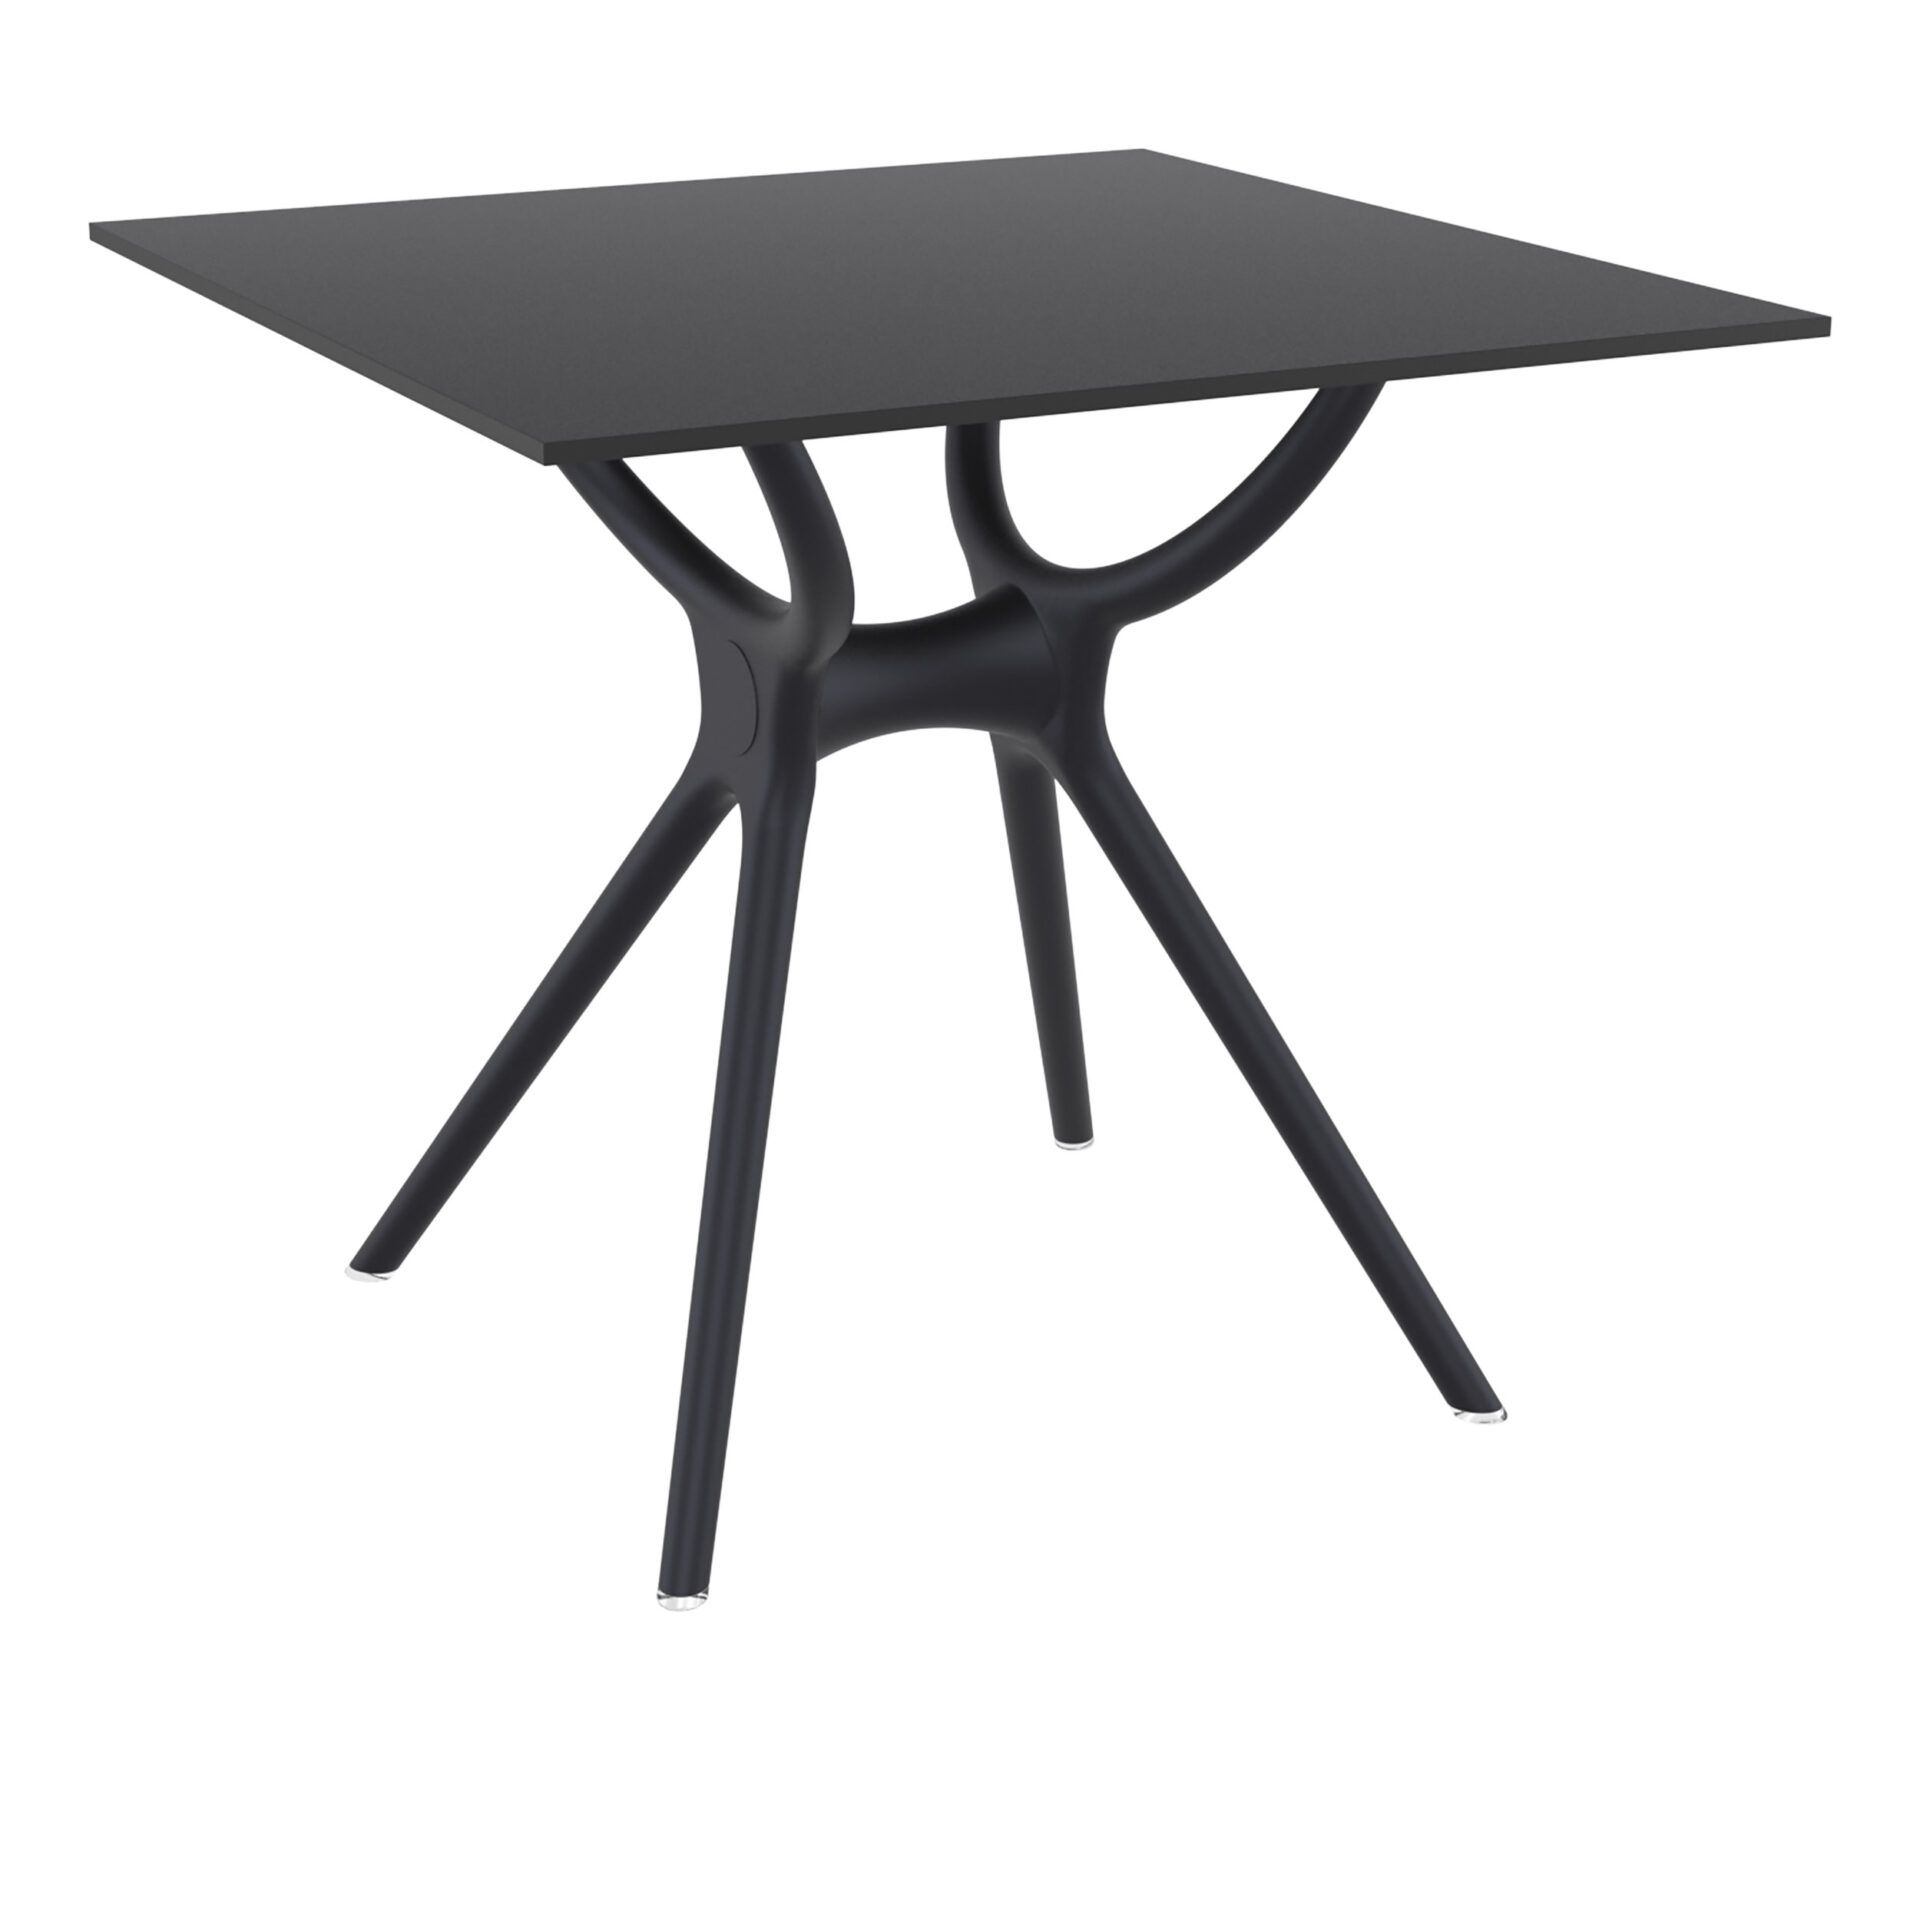 polypropylene hospitality air table 80 black front side